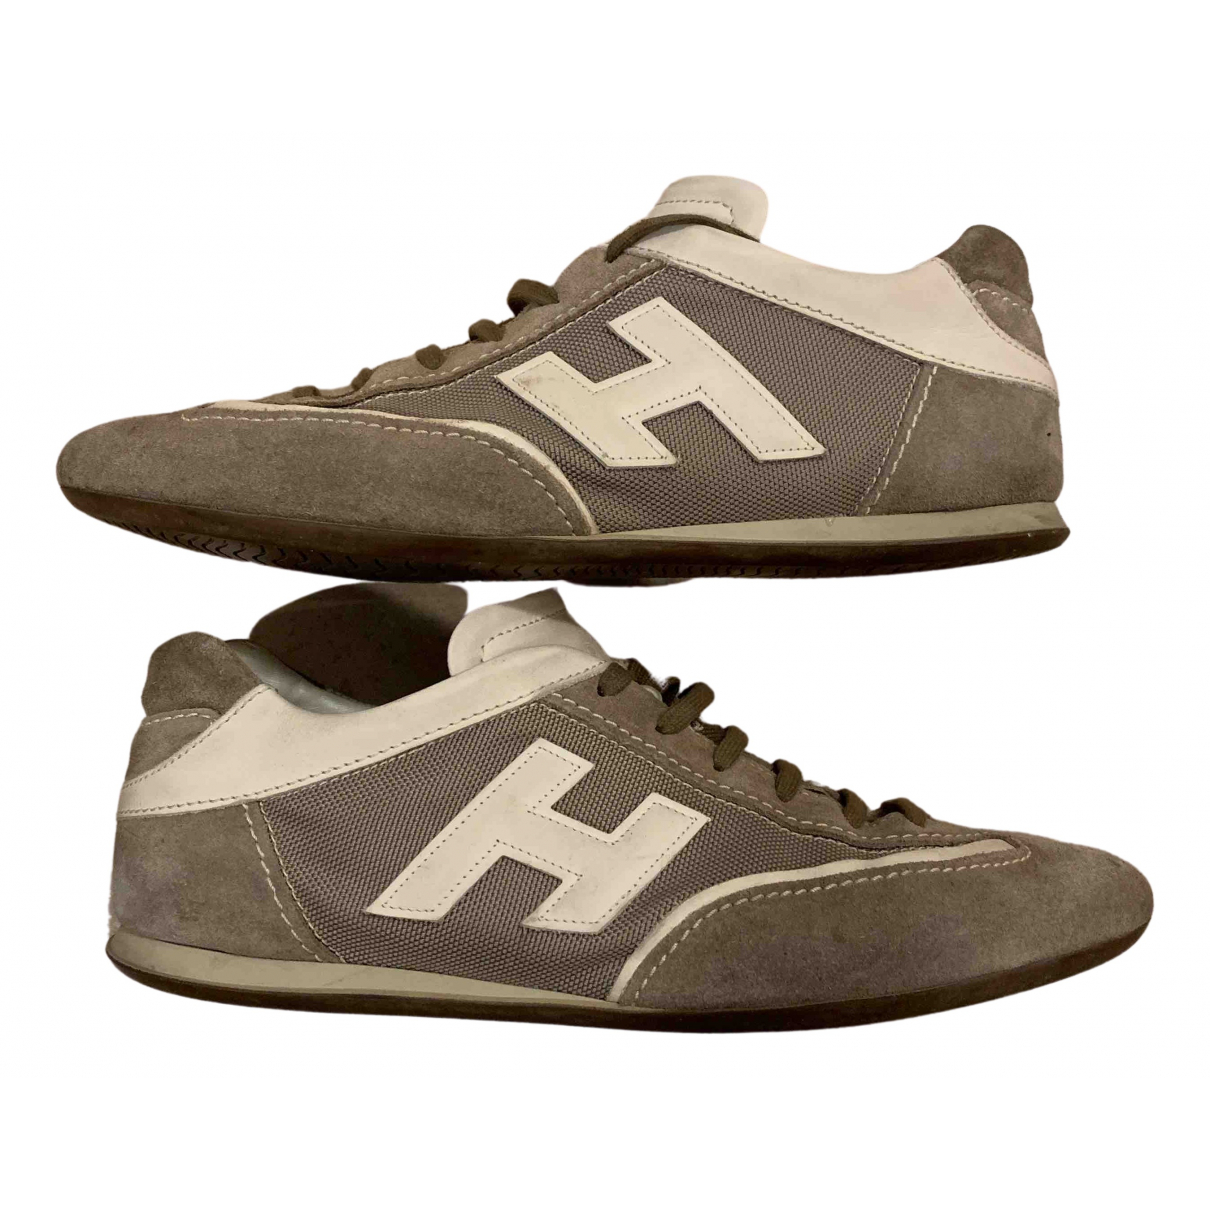 Hogan N Beige Leather Trainers for Men 9 US